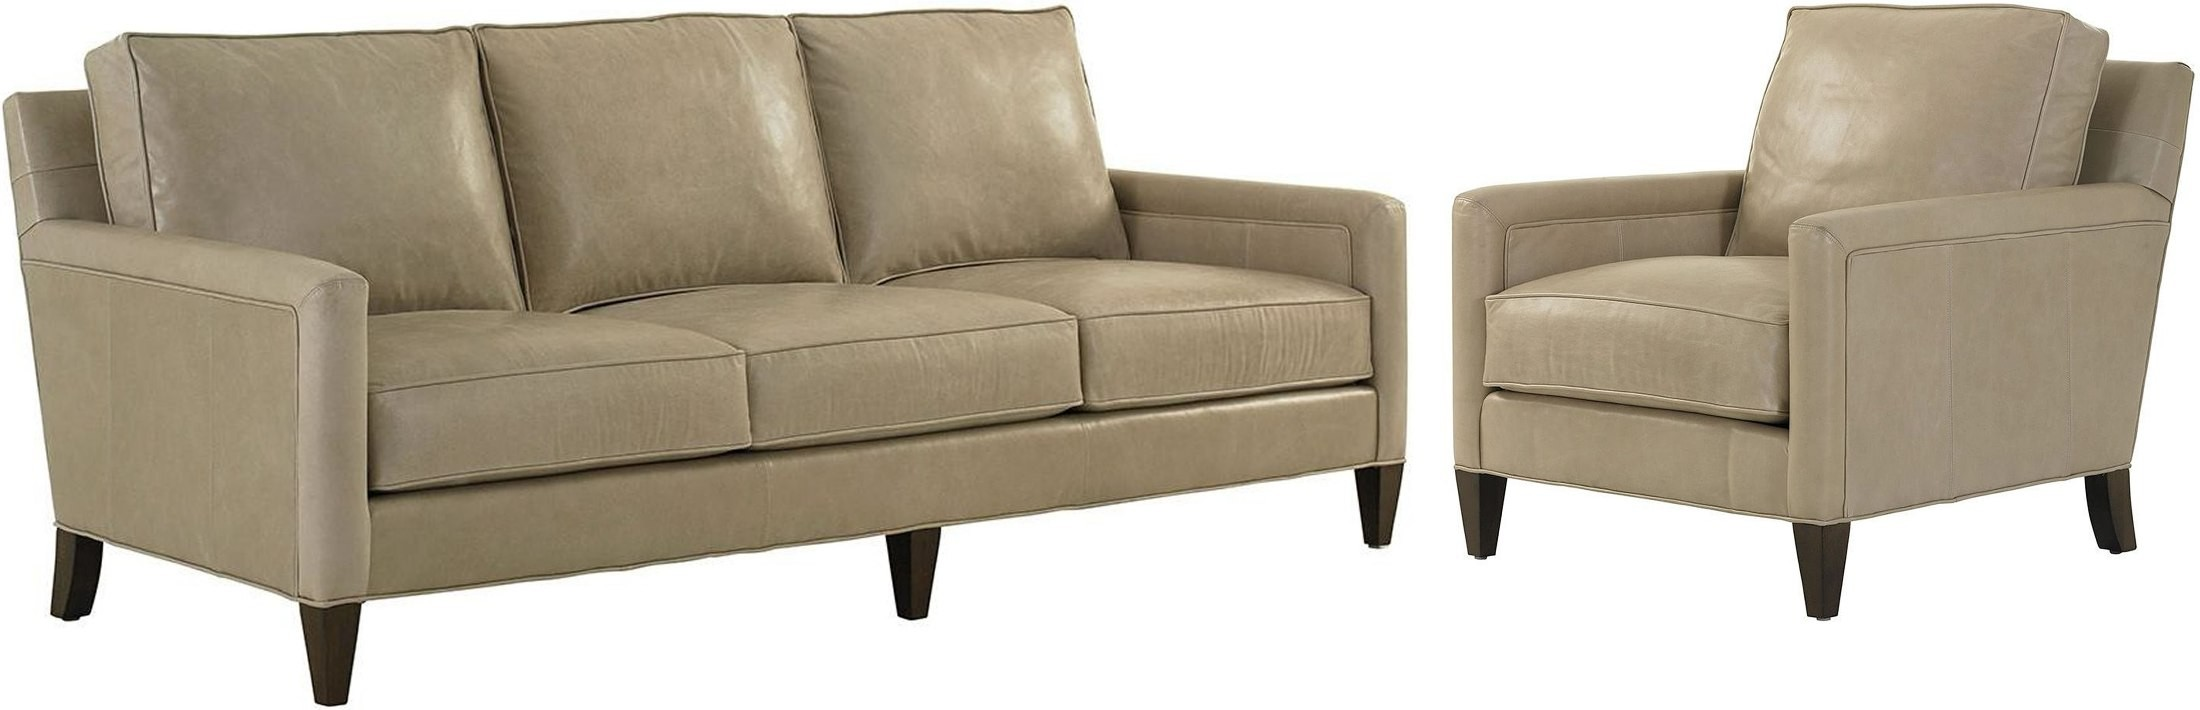 Macarthur Park Foxboro Gray Leather Living Room Set From Lexington Coleman Furniture